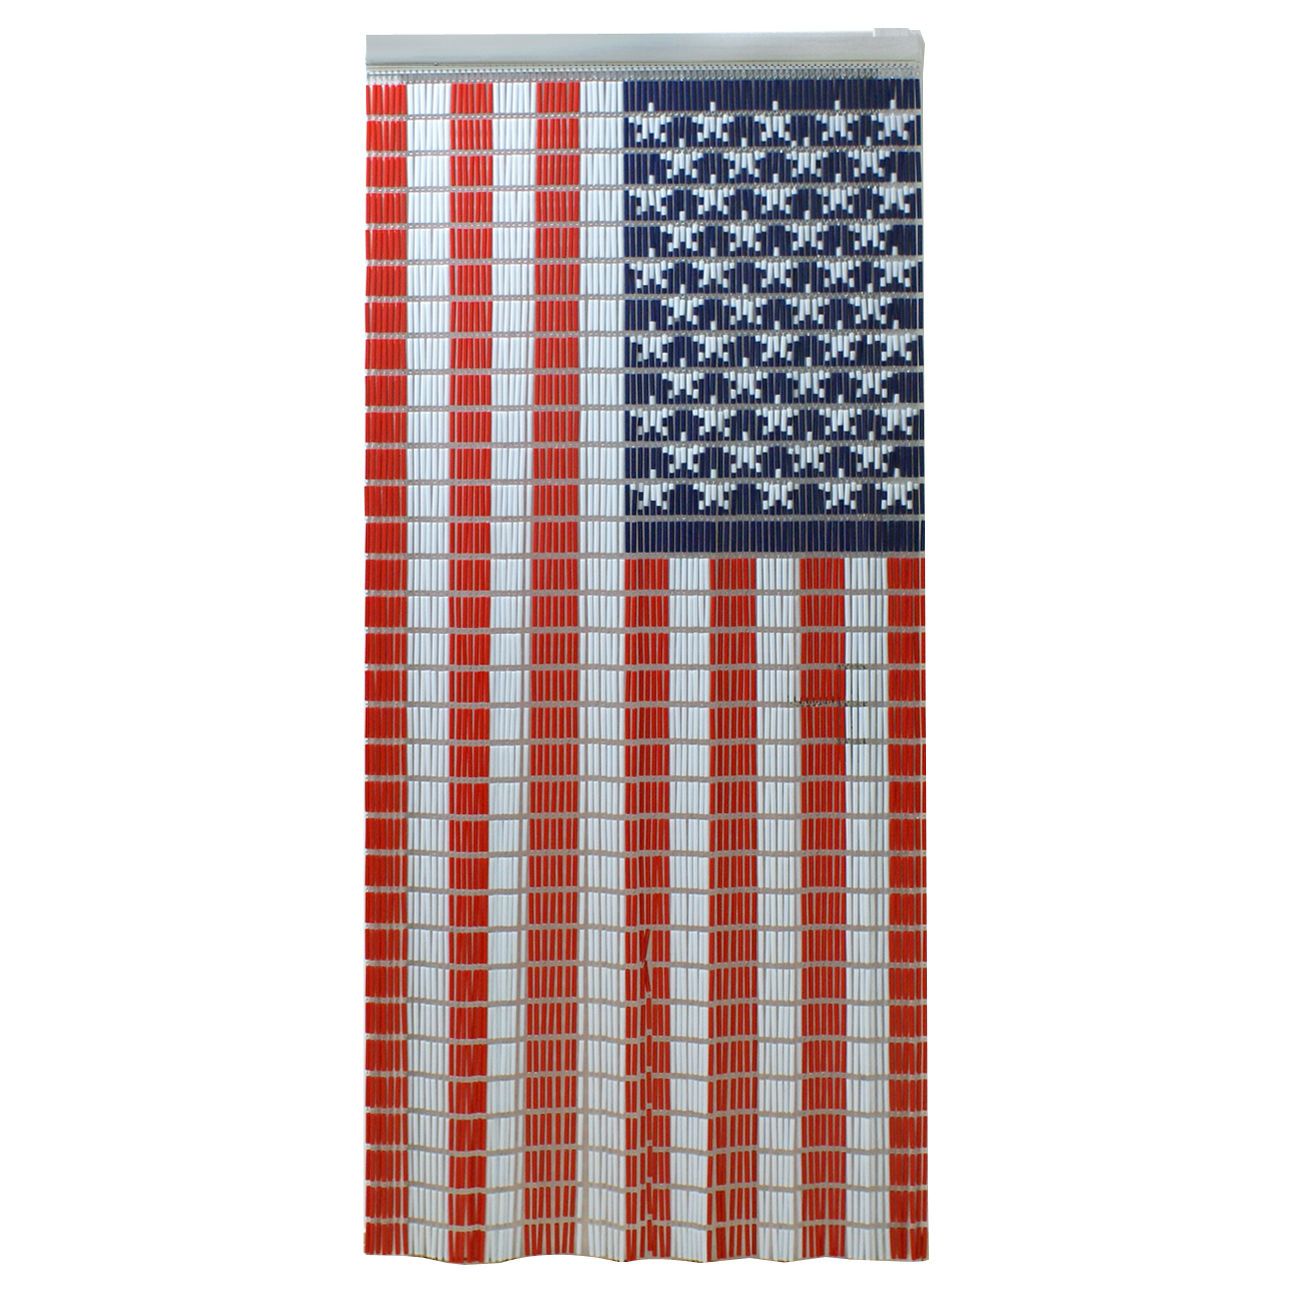 Gizmo Supply 35' x 79' Door Curtains Wall Hanging Drapes Room Divider the Old Glory US Flag